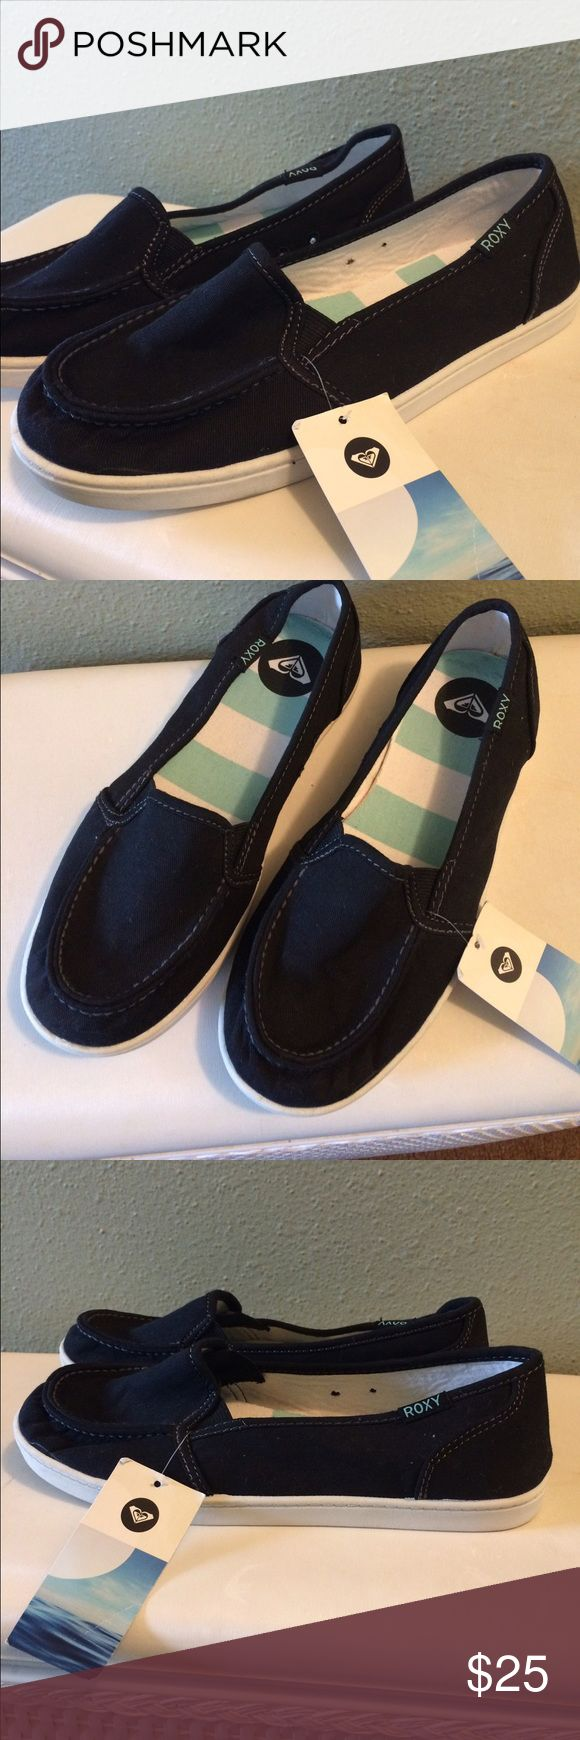 Roxy Black & White Slip On Loafers Size 8 NWT New never worn, slip on loafers very comfortable, size 8, canvas material and white rubber sole, open to reasonable offers 😊 Roxy Shoes Flats & Loafers